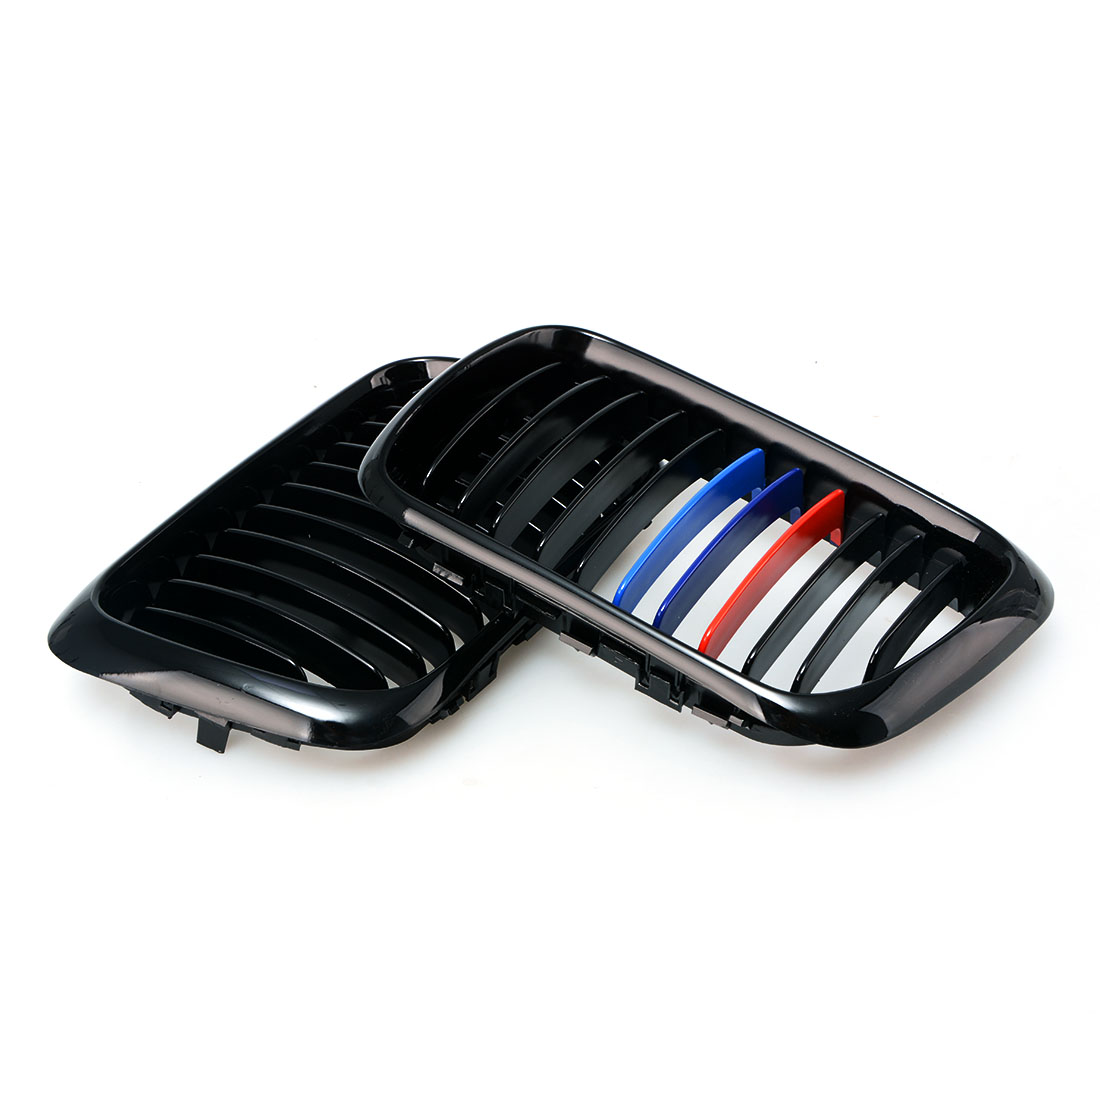 Car-styling Car Front Grille Reflective Strip 3 Color Stickers For BMW E46 E39 E90 E60 E36 F30 F10 E34 X5 E53 X6 E92 2pcs lot 24 smd car led license plate light lamp error free canbus function white 6000k for bmw e39 e60 e61 e70 e82 e90 e92